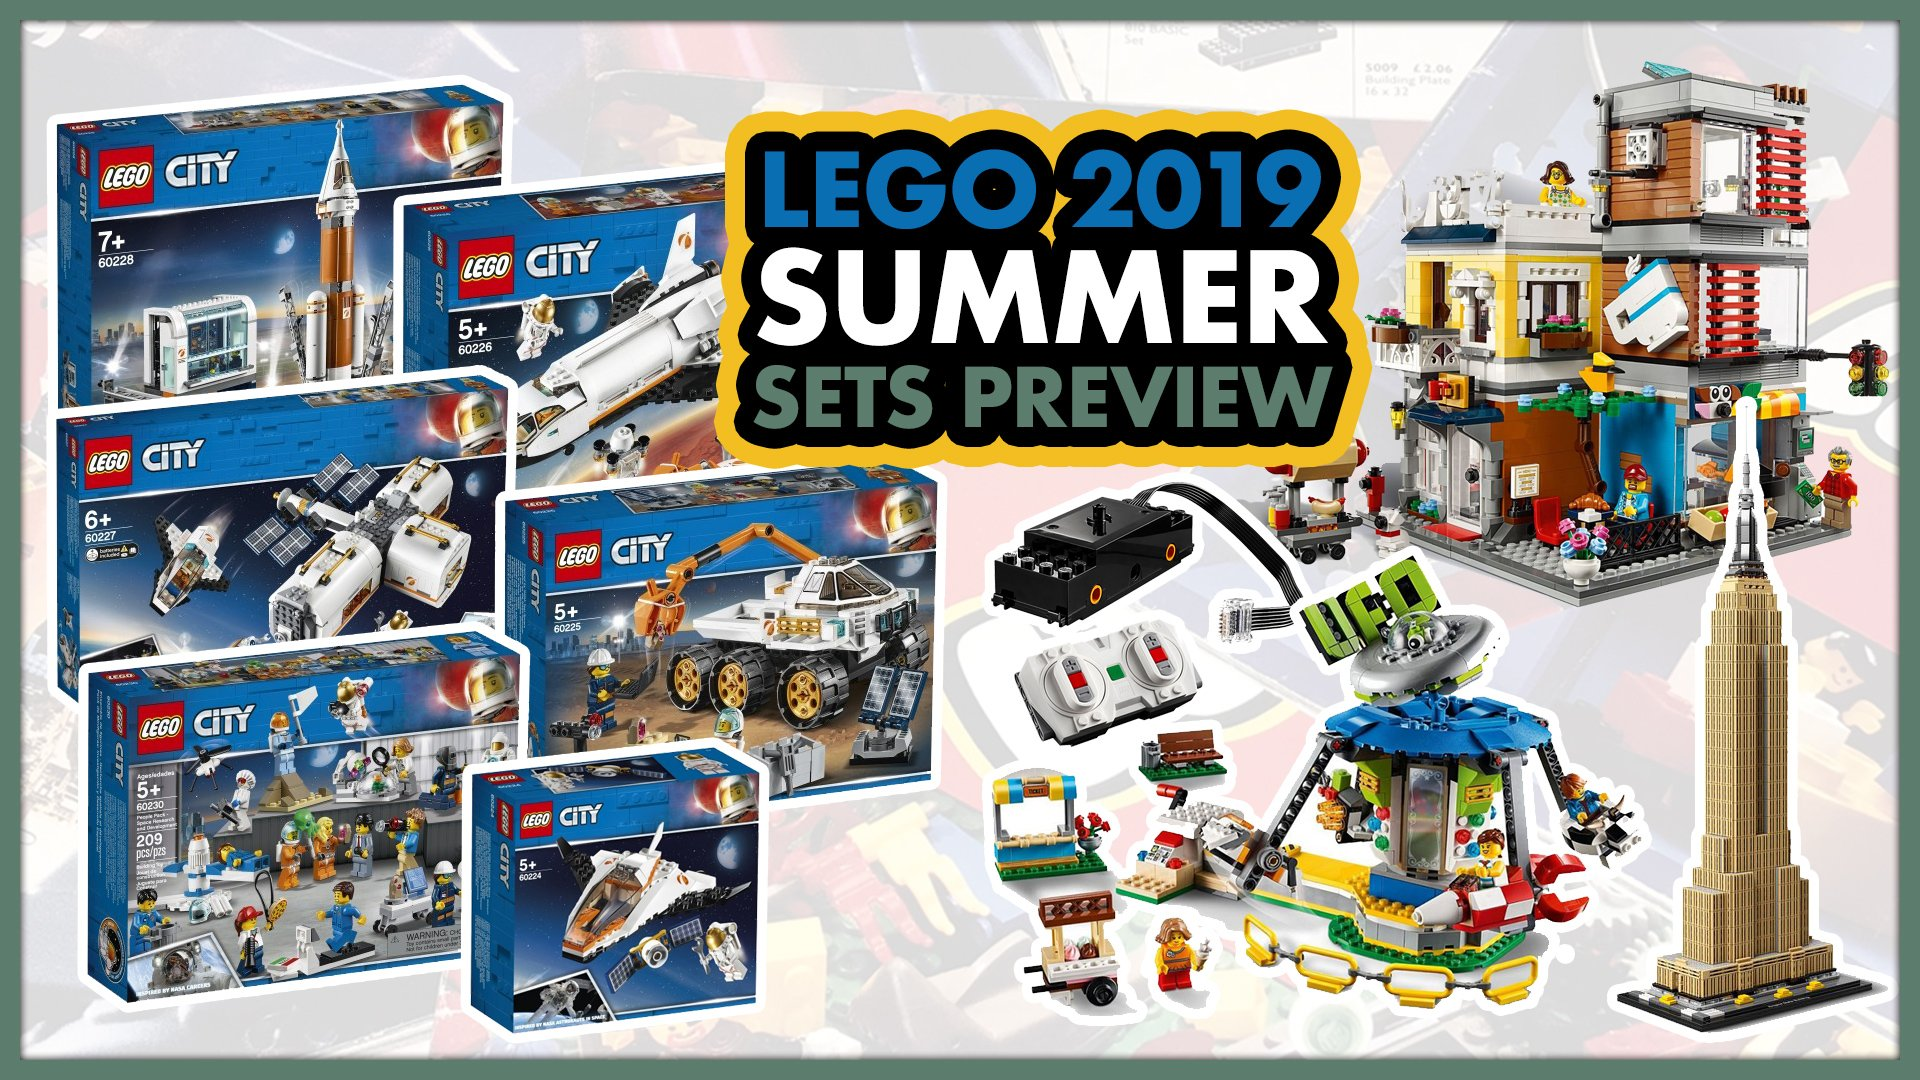 LEGO 2019 Summer Sets Preview! Returning to space!